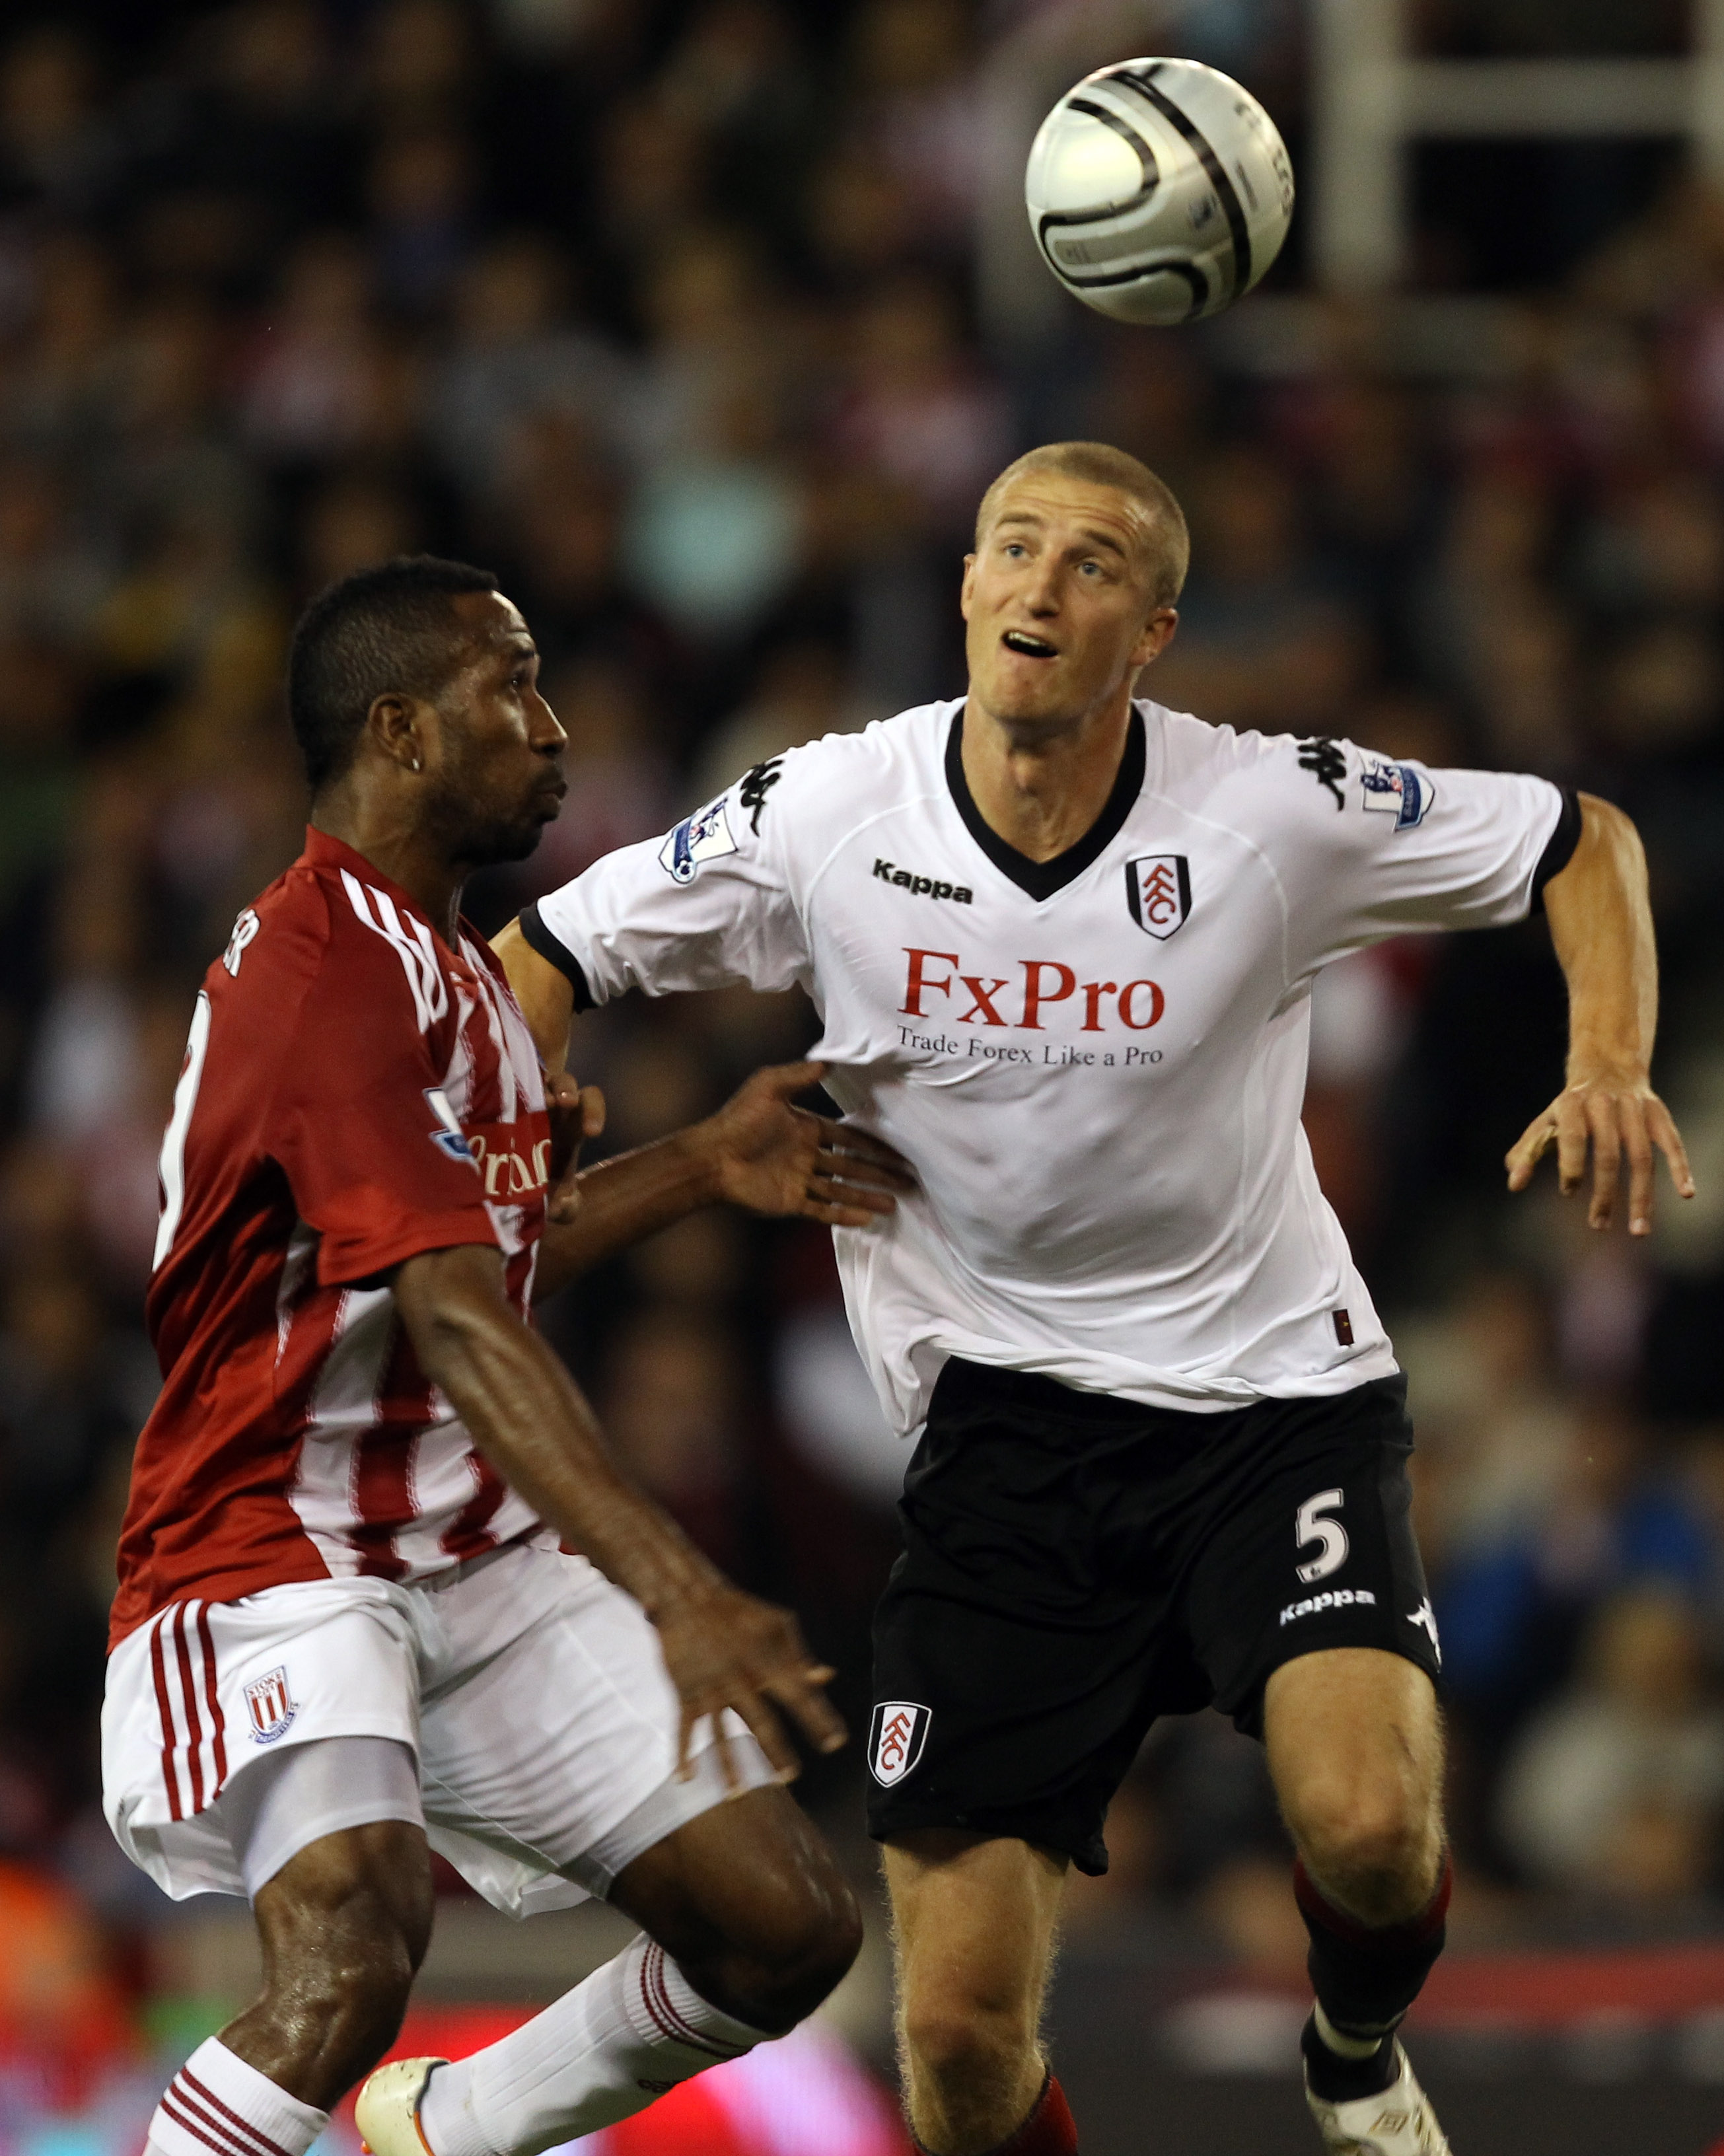 STOKE ON TRENT, ENGLAND - SEPTEMBER 21:  Ricardo Fuller of Stoke is challenged by Brede Hangeland of Fulham during the Carling Cup 3rd Round tie between Stoke City and Fulham at the Britannia Stadium on September 21, 2010 in Stoke on Trent, England.  (Pho